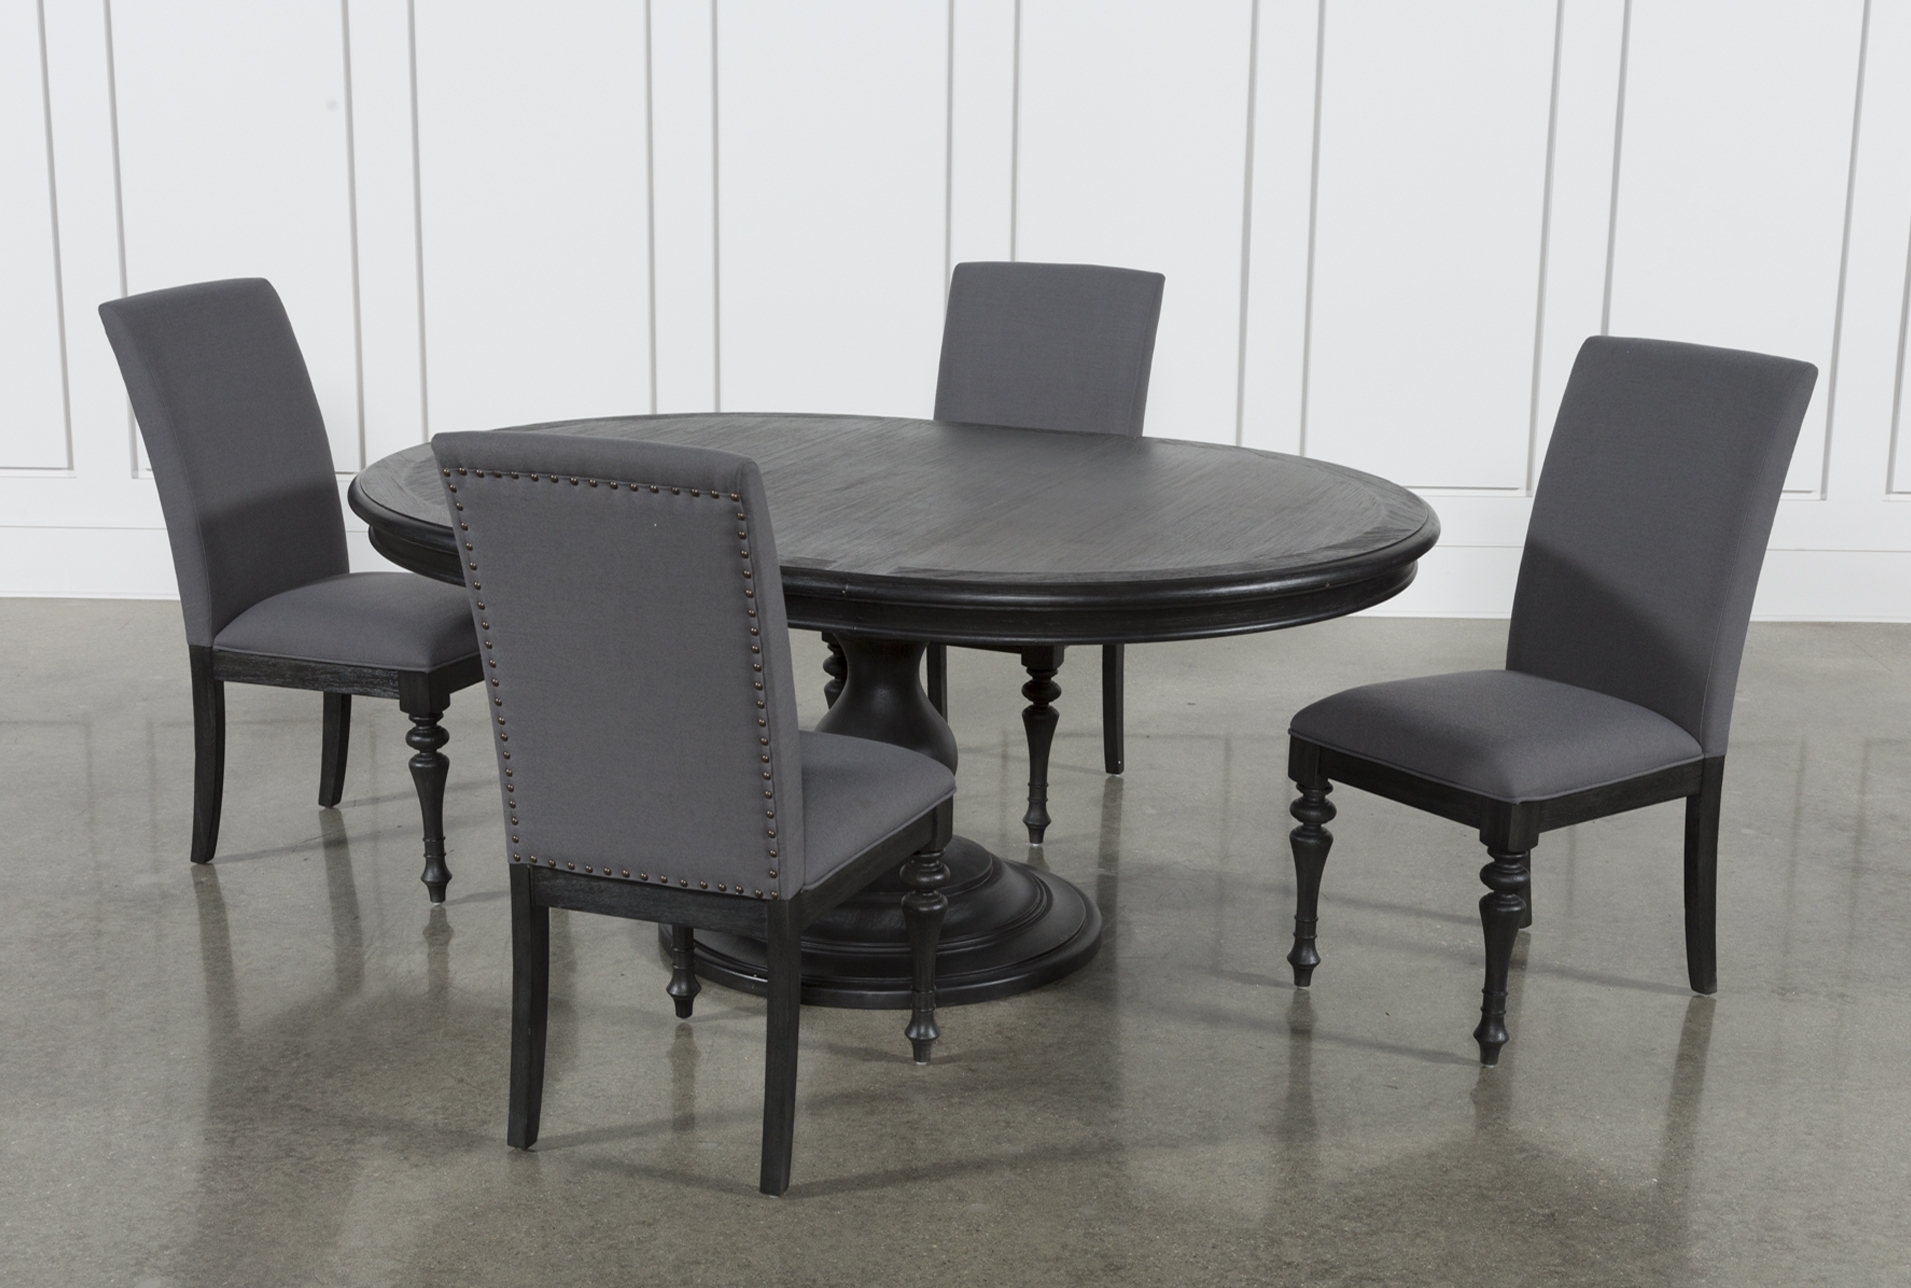 Most Recent Global Furniture Bar Table Black Within Caira Black 5 Piece Round Dining Sets With Upholstered Side Chairs (Gallery 3 of 25)